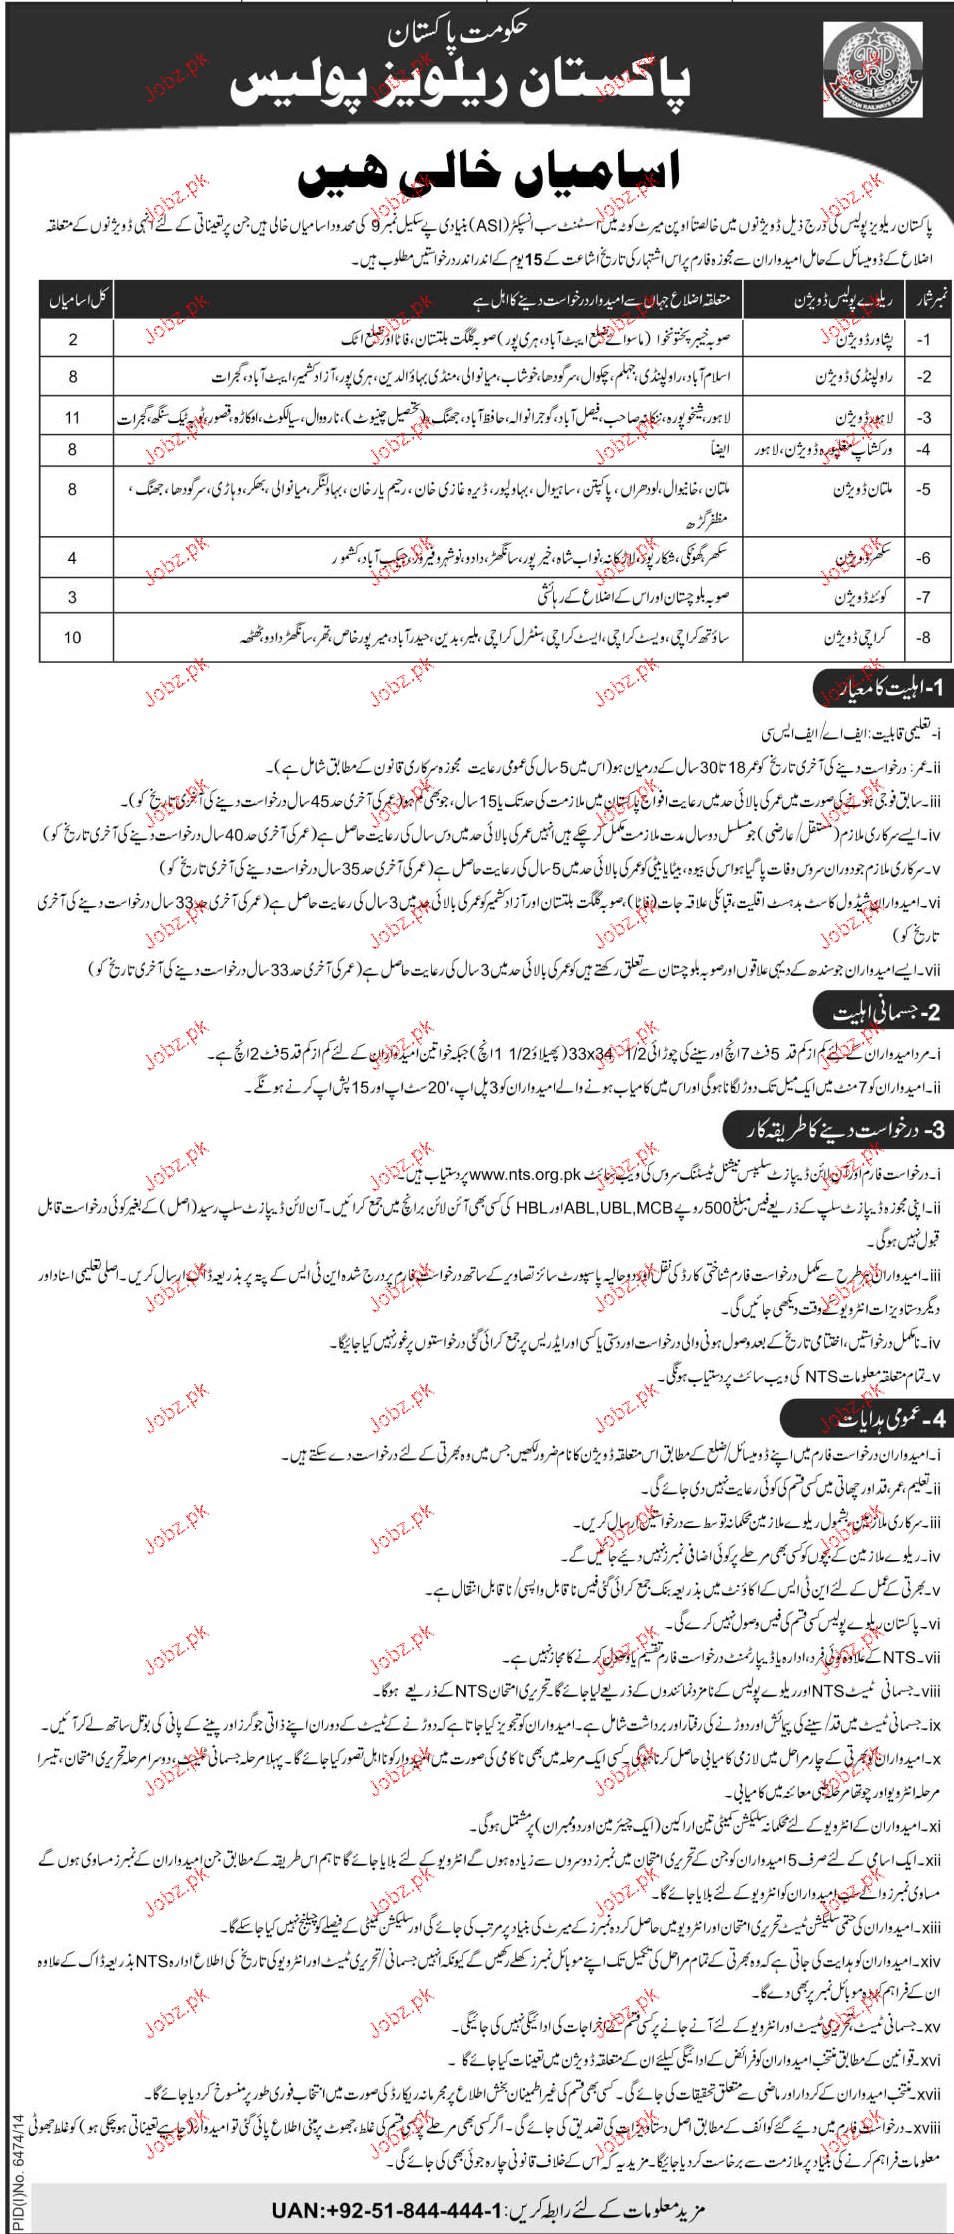 Recruitment of ASI in Pakistan Railway Police